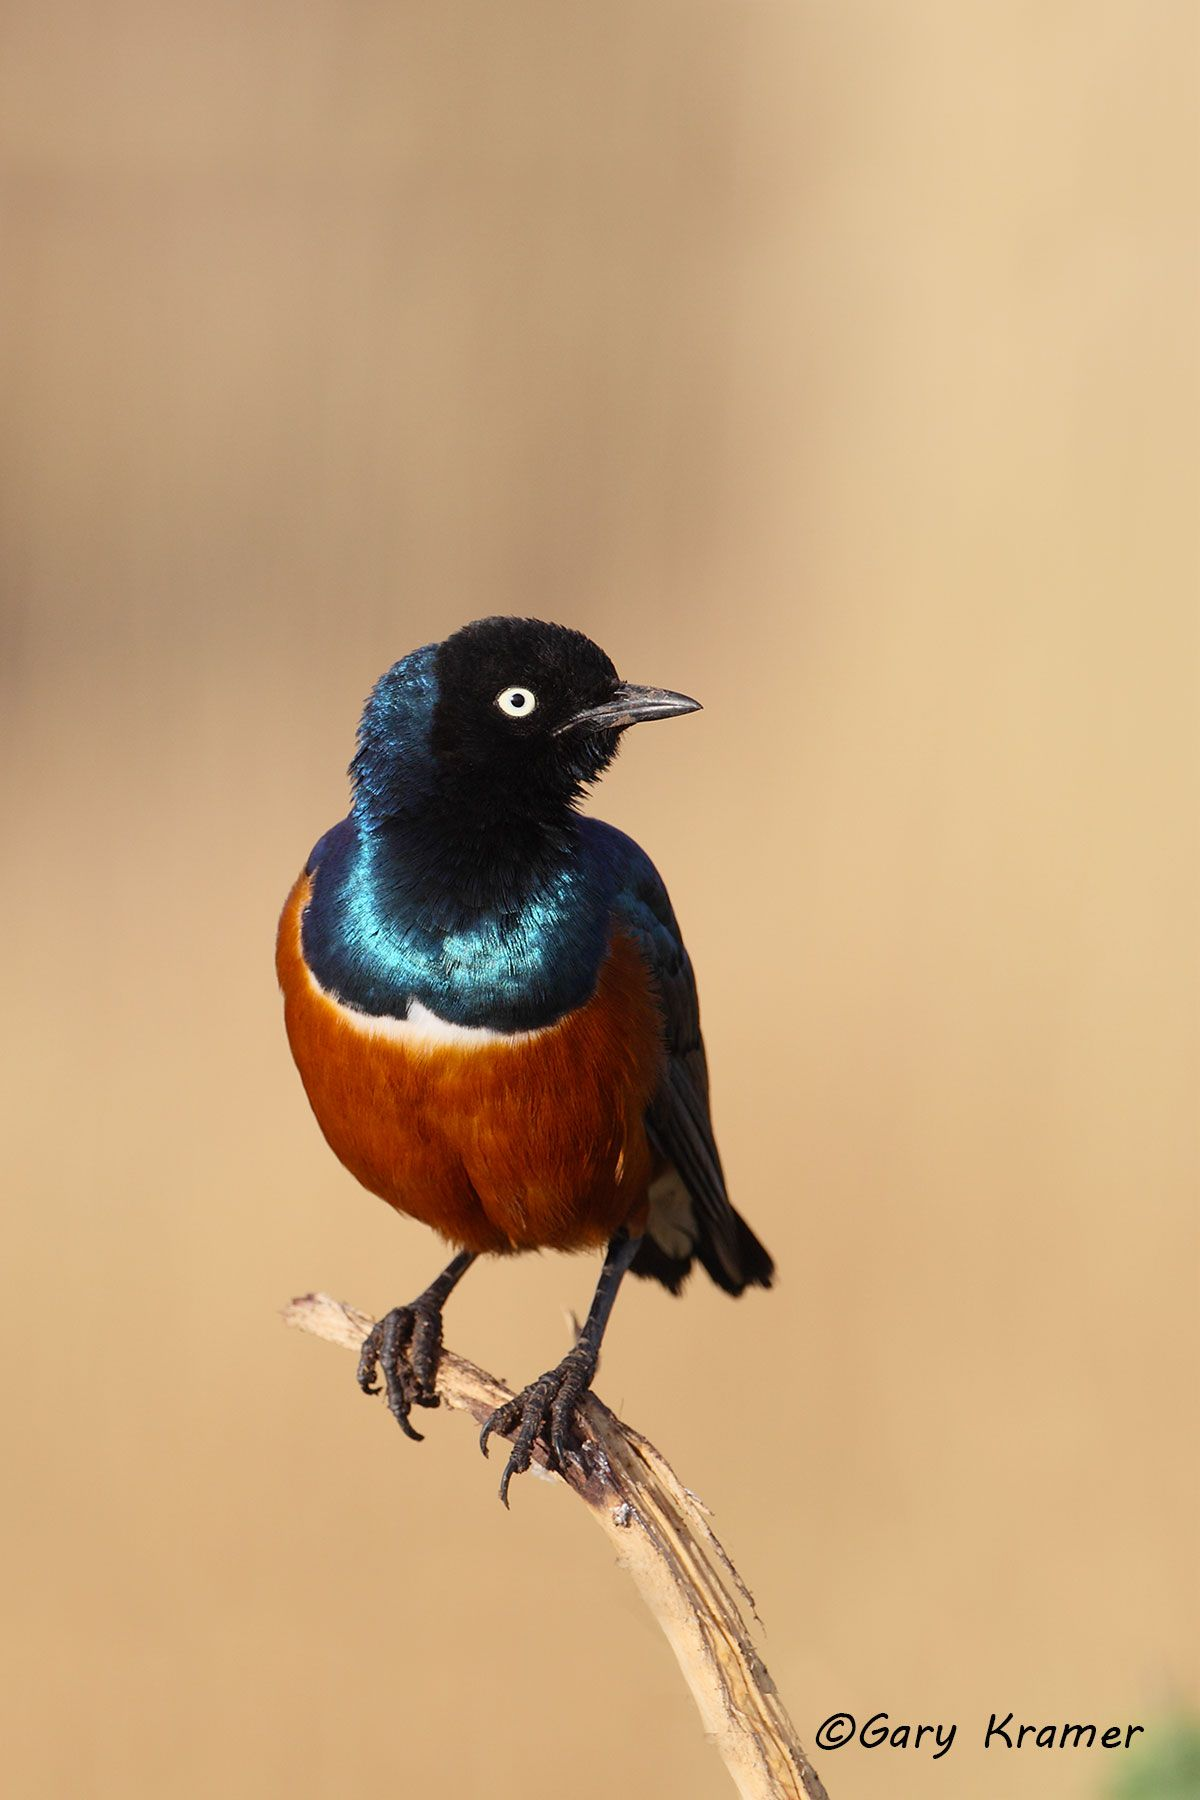 Superb Starling (Lamprotornis superbus) - ABSss#004d(2)